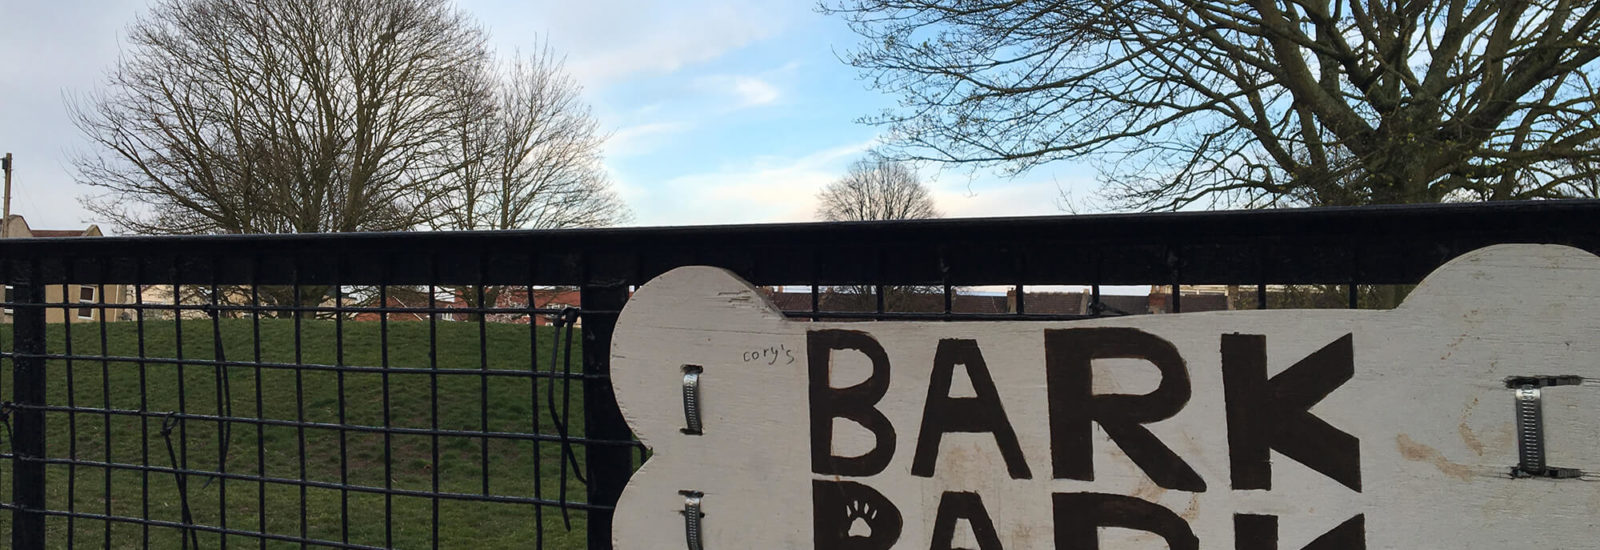 Image of Bark Park